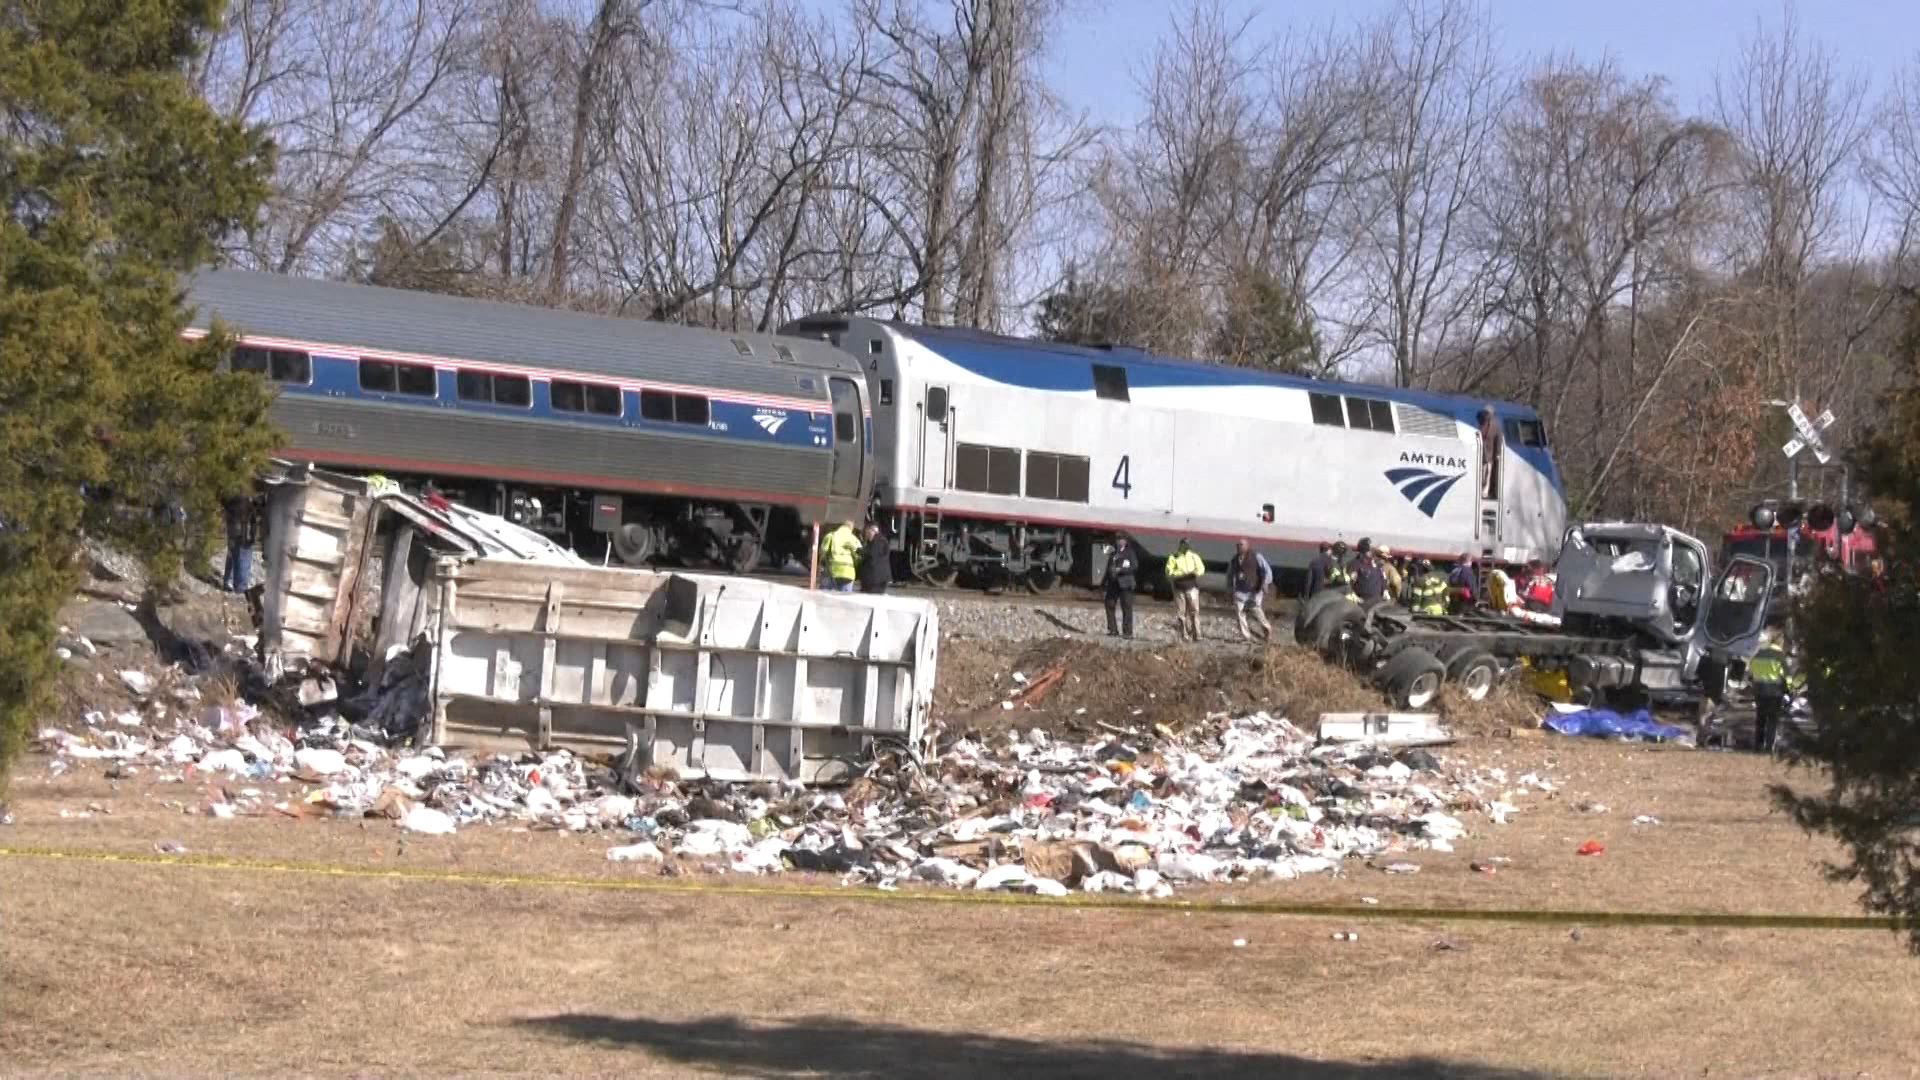 Train carrying GOP lawmakers to retreat hits trash truck